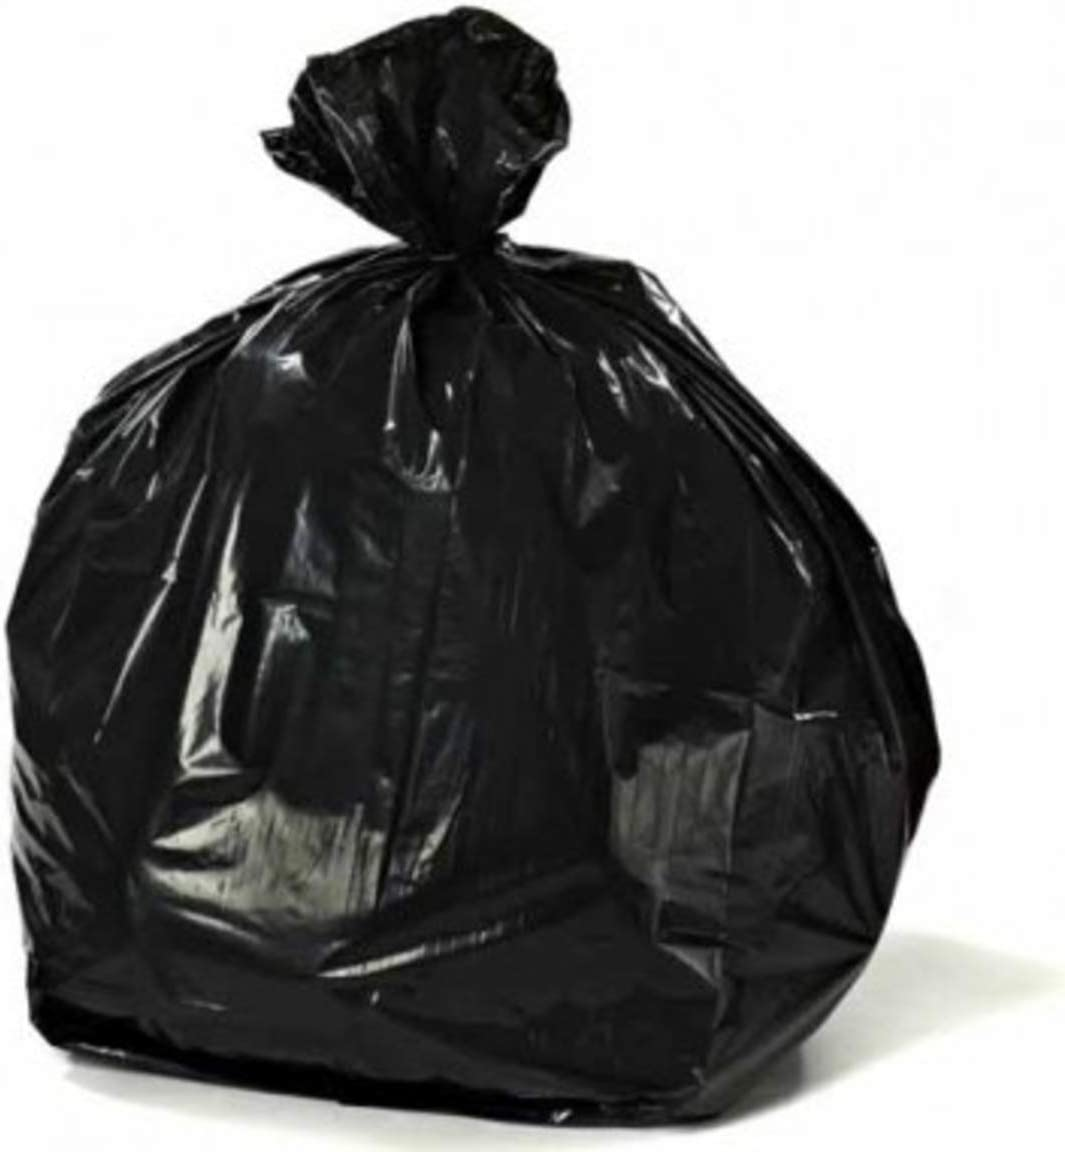 "Plasticplace 12-16 Gallon Trash Bags │ 1.0 Mil │ Black Tall Garbage Can Liners │ 24"" x 31"" (250 Case)"